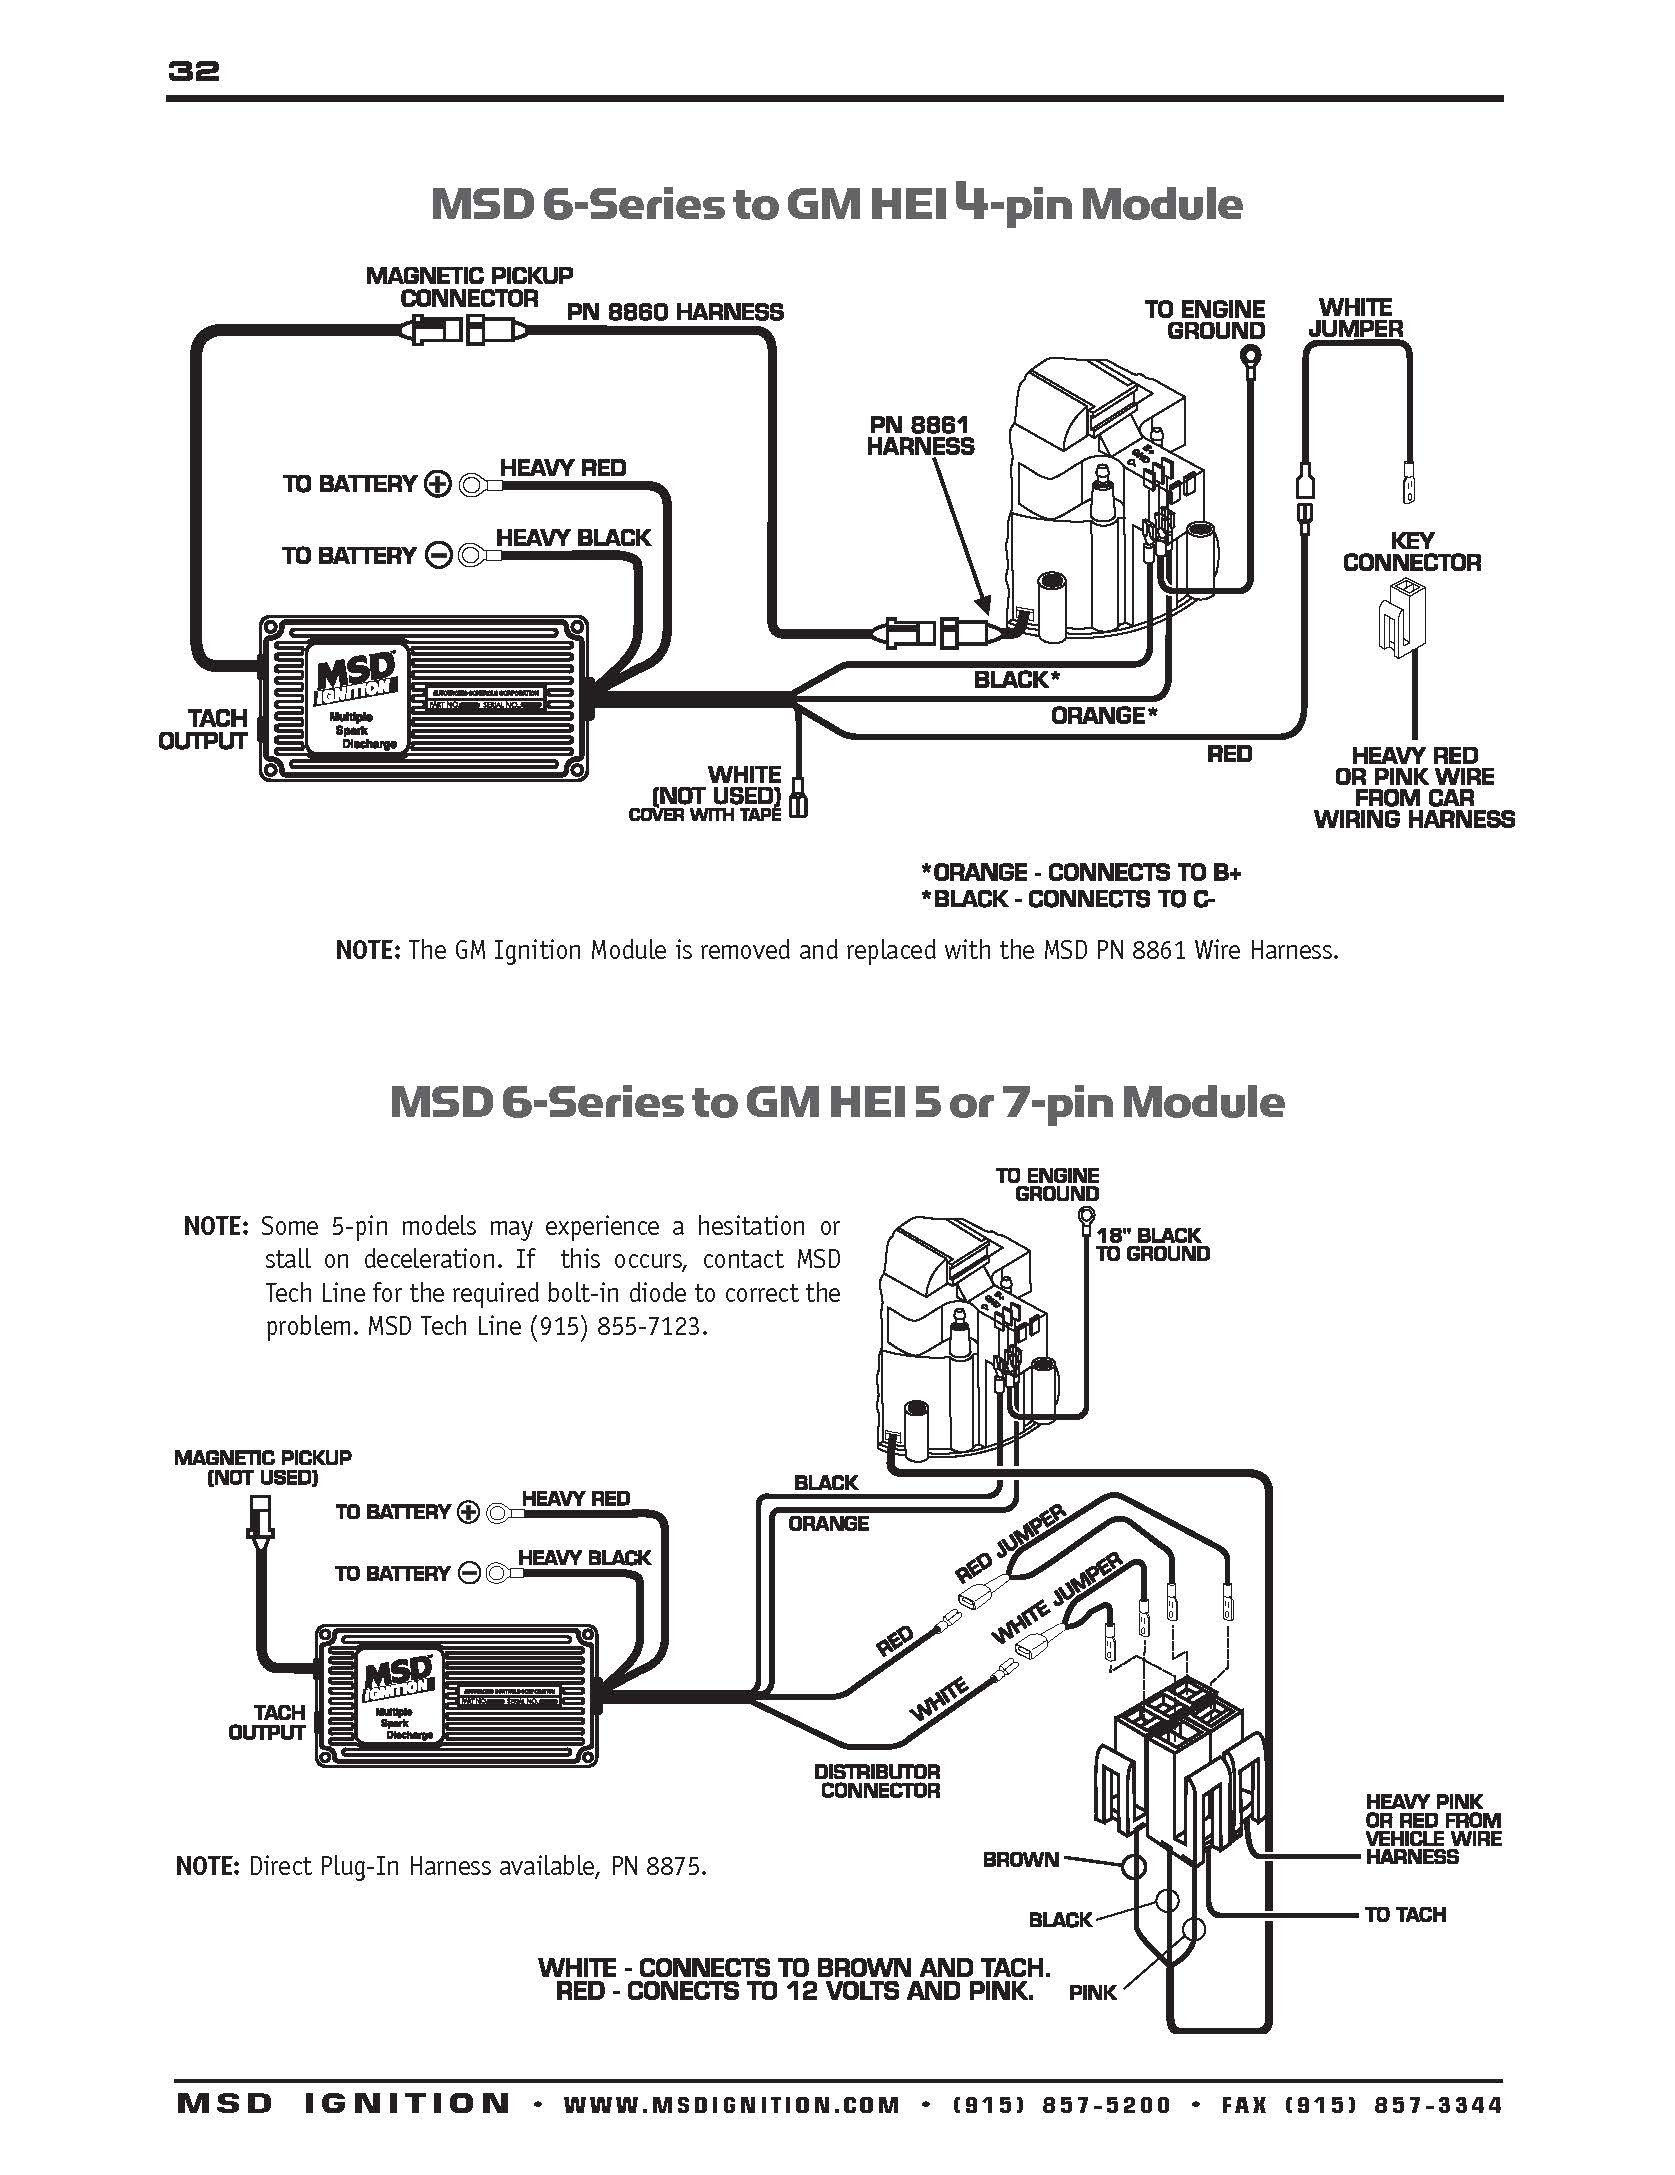 msd rev limiter wiring install on hei wiring diagram today review rh wiringreview today Mallory Ford F100 Truck Wiring Diagram Mallory Ignition Wiring Diagram Chevy